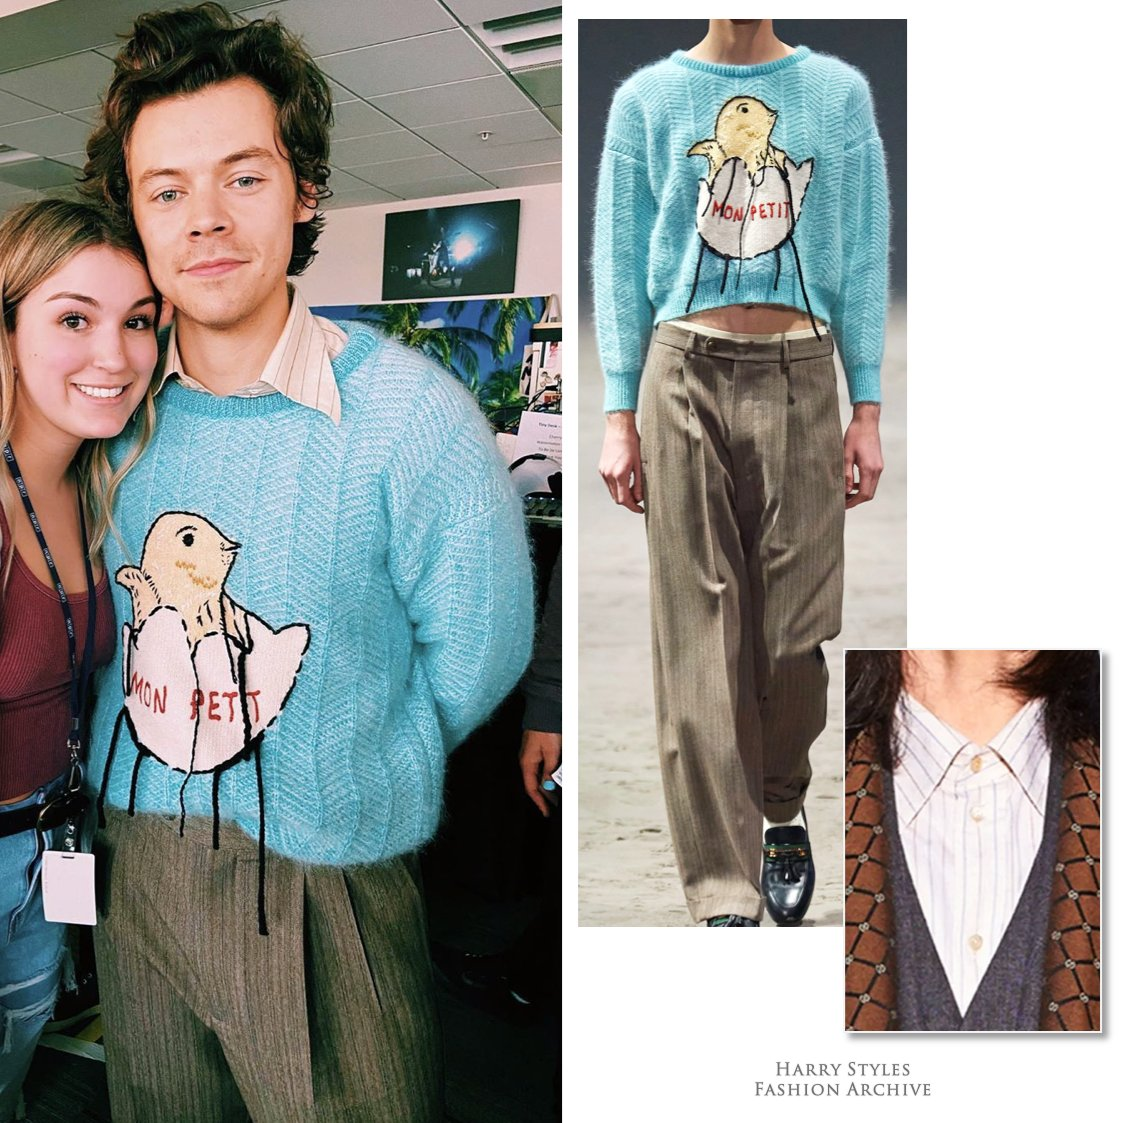 harry styles fashion archive on twitter 02 25 20 harry wore the sweater and trousers from look 2 in gucci s fall 2020 collection and paired them with a pinstripe shirt from pre fall fall harry styles fashion archive on twitter